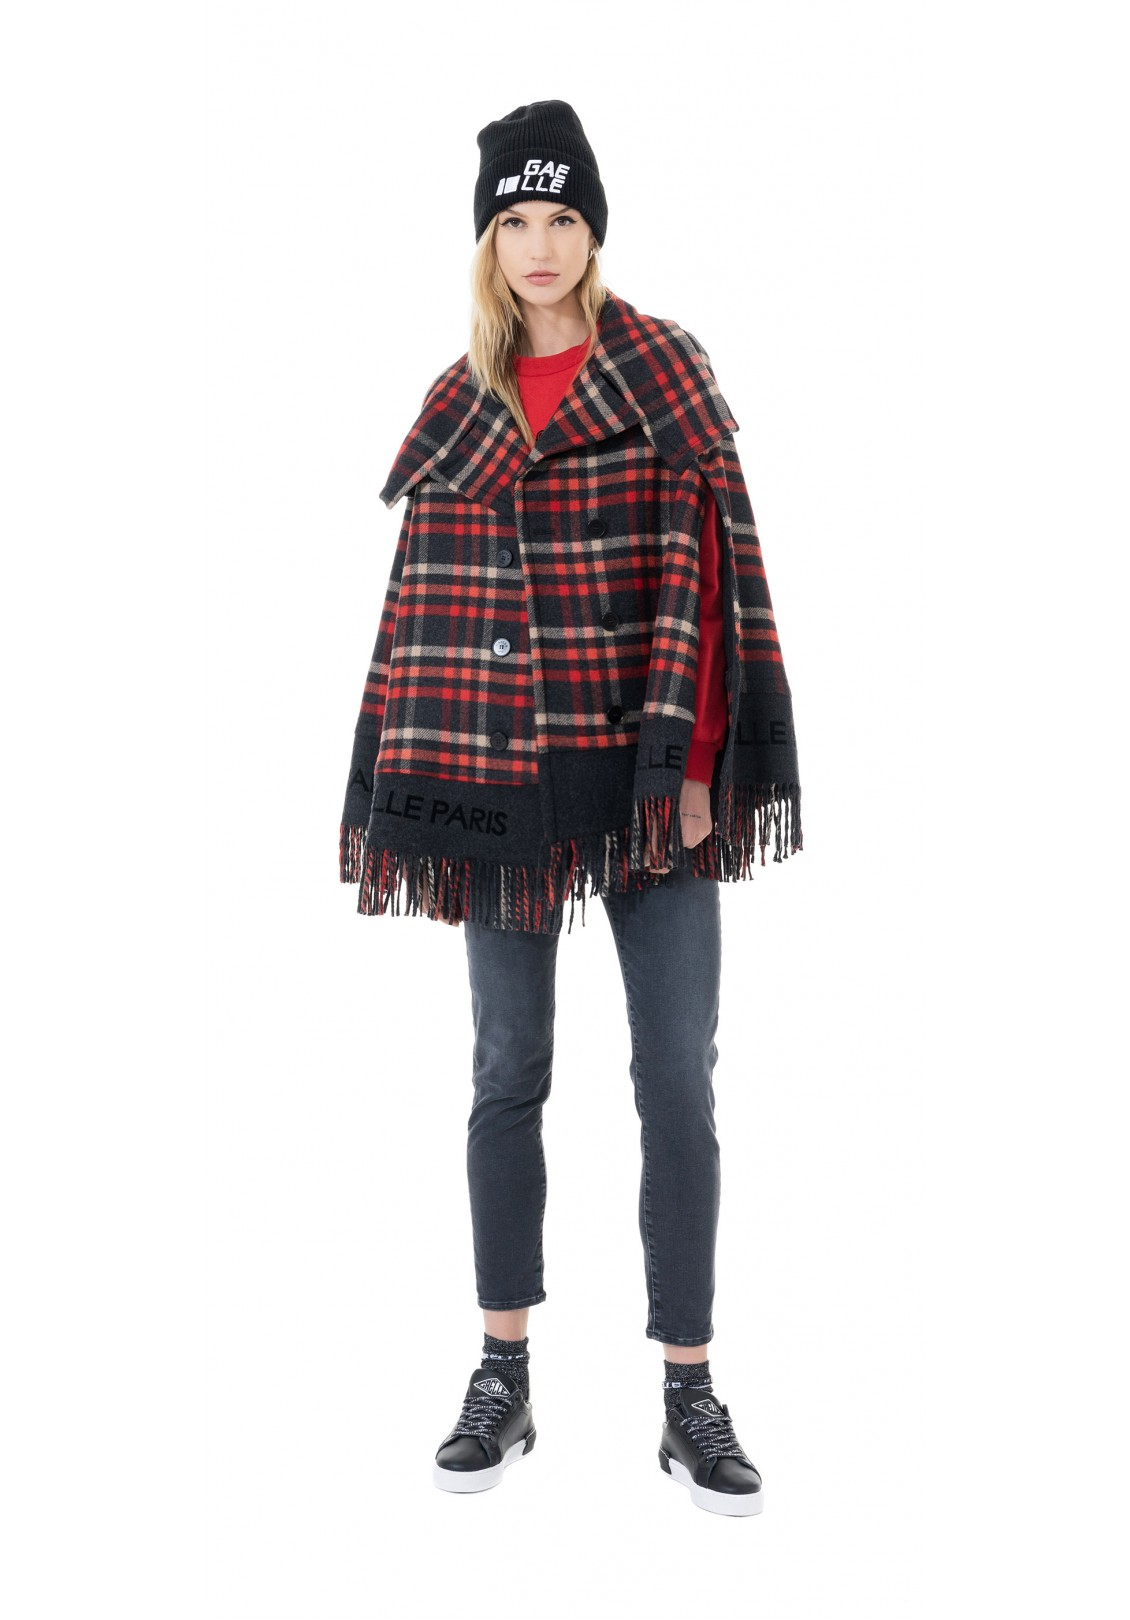 COAT - GBD5465 - GAELLE PARIS